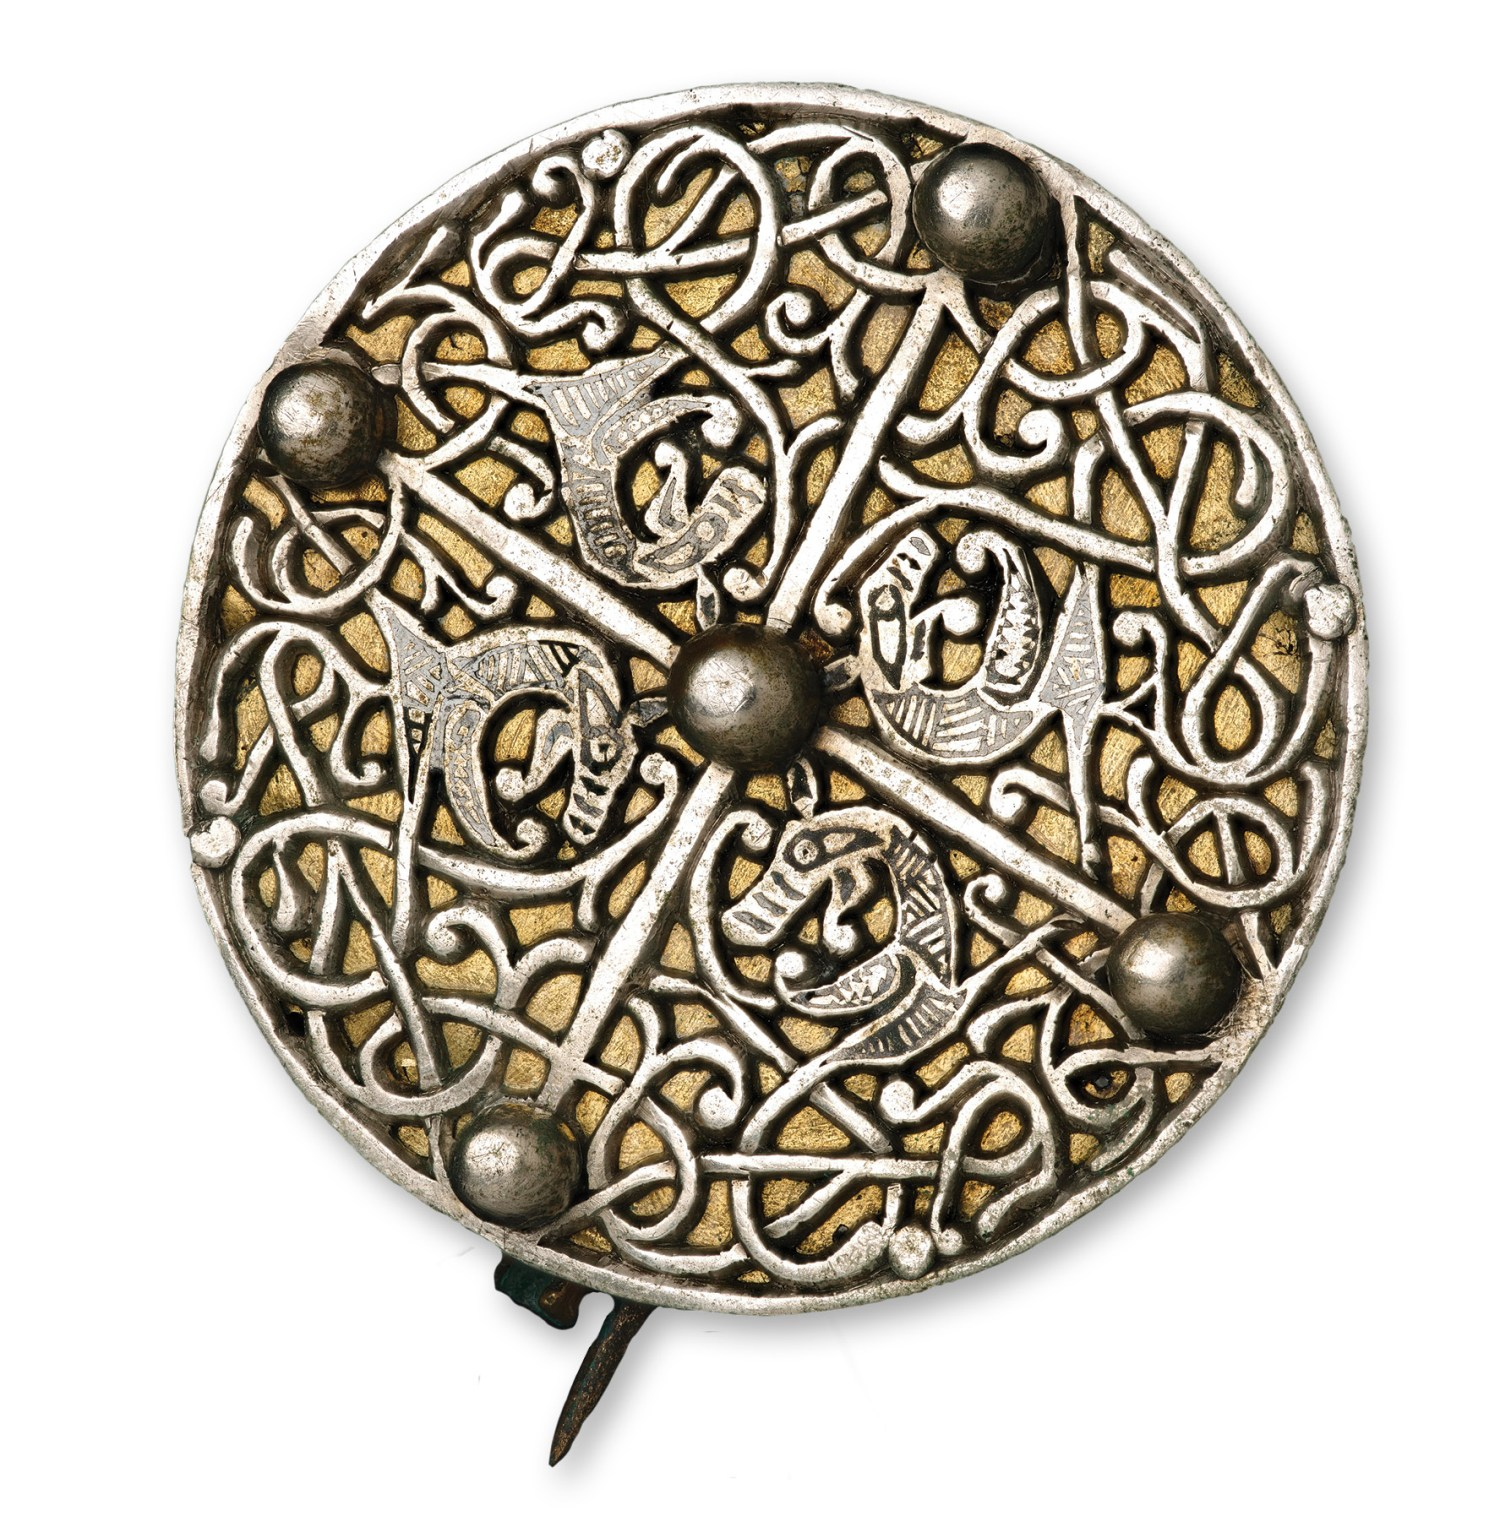 LEFT Disc-brooches like this example from the hoard are more commonly associated with the Anglo-Saxon kingdoms of southern and eastern England; the fashion did not reach Scotland. The presence of so much Anglo-Saxon artistry from brooches and the pectoral cross to carved runes in a 'Viking' silver hoard raises intriguing questions about how it came together, and the significance of its discovery in Galloway, which was described as 'the Saxon coast' in Irish sources.